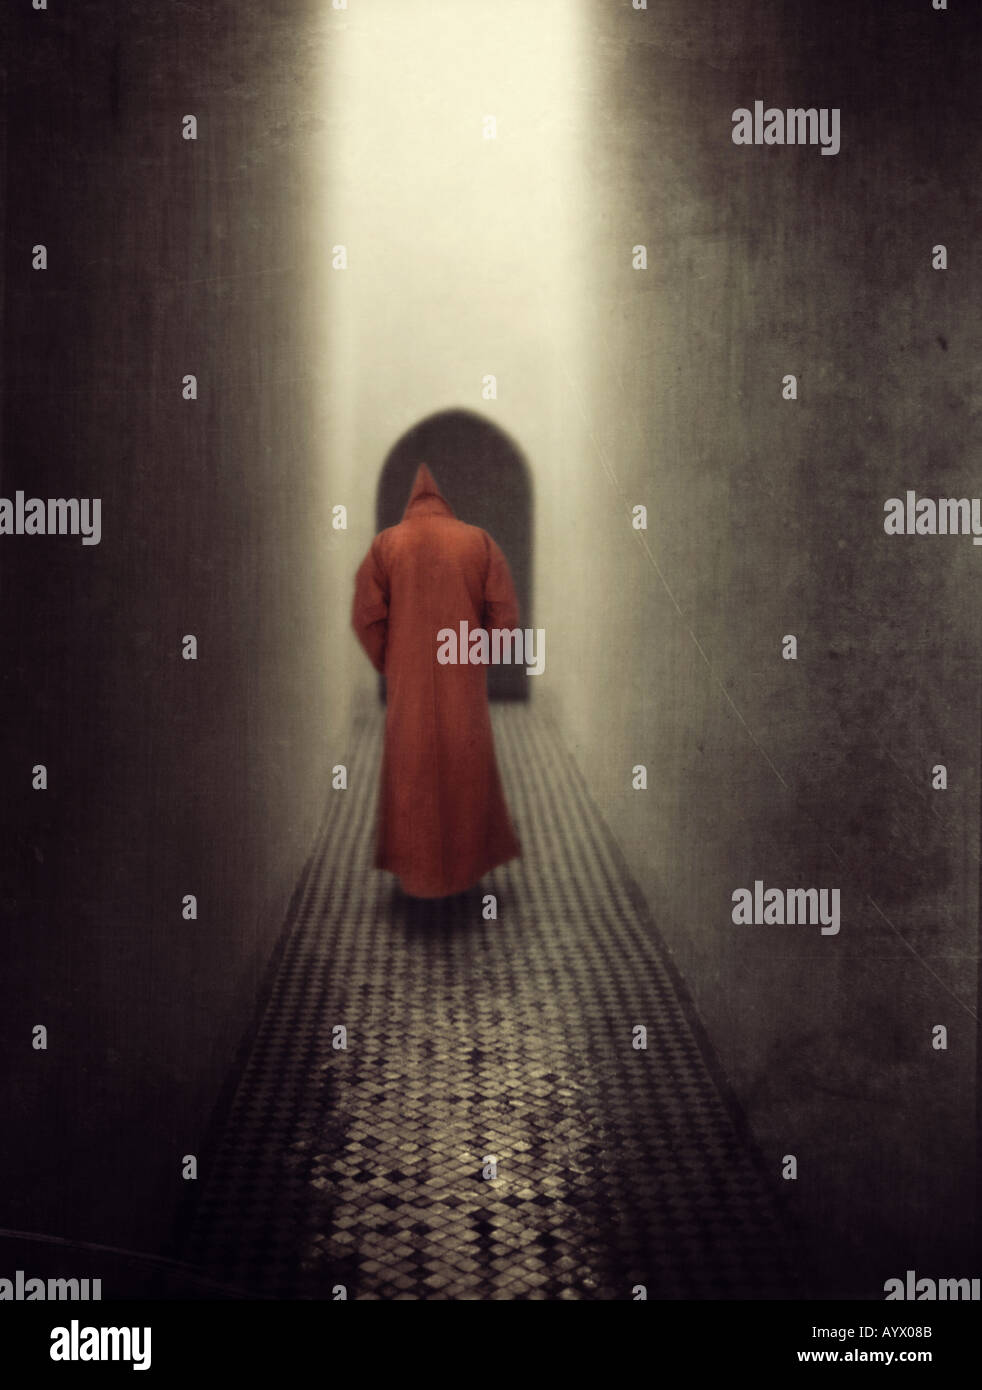 monk floating in air in monastery hallway Stock Photo